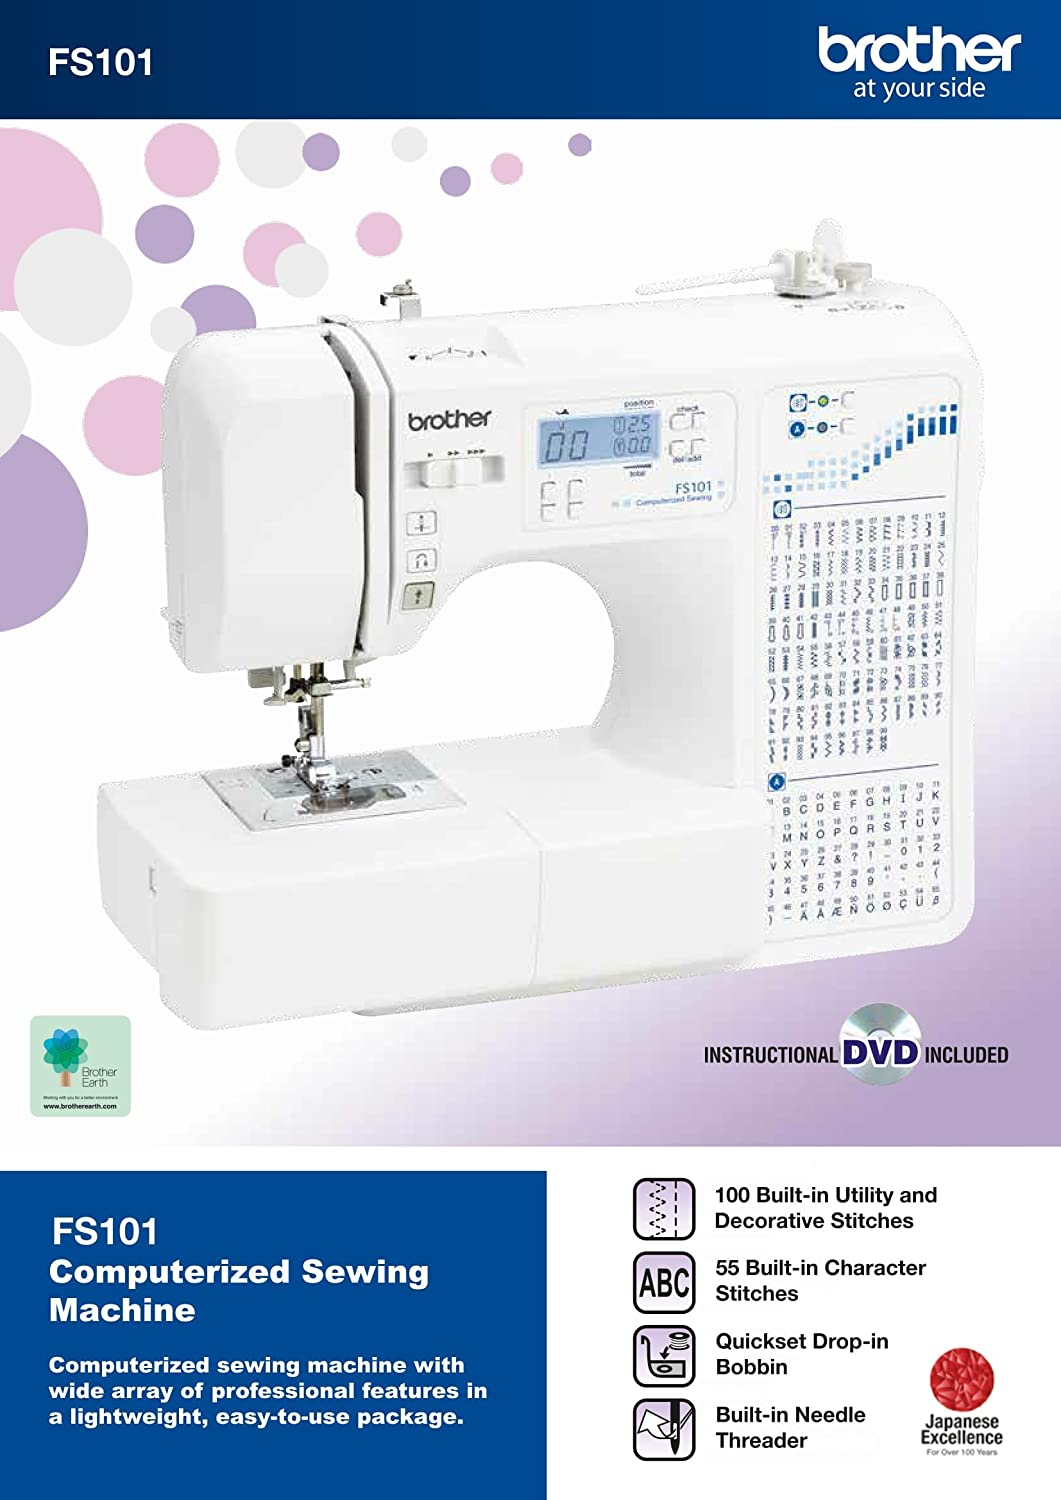 Brother FS 101 Computerised Sewing Machine: Amazon.in: Home & Kitchen